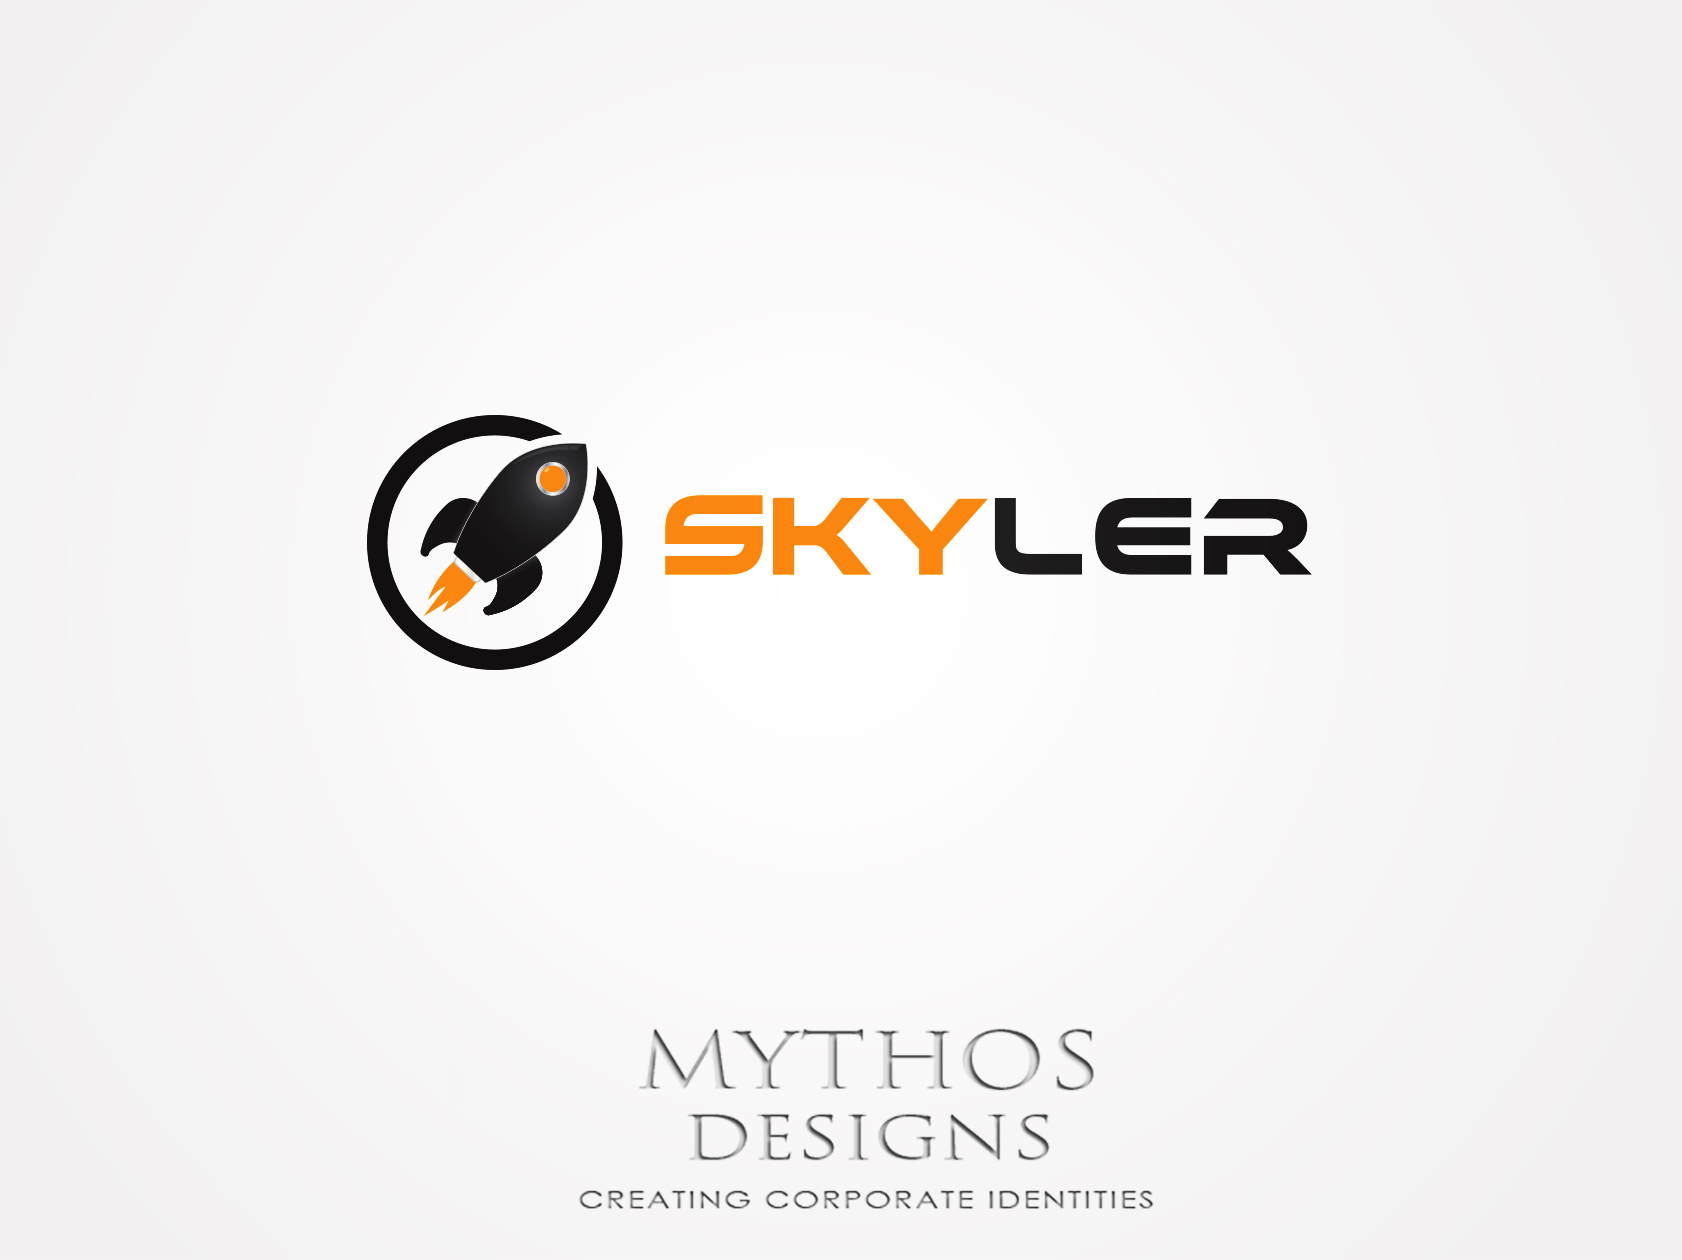 Logo Design by Mythos Designs - Entry No. 192 in the Logo Design Contest Artistic Logo Design for Skyler.Asia.